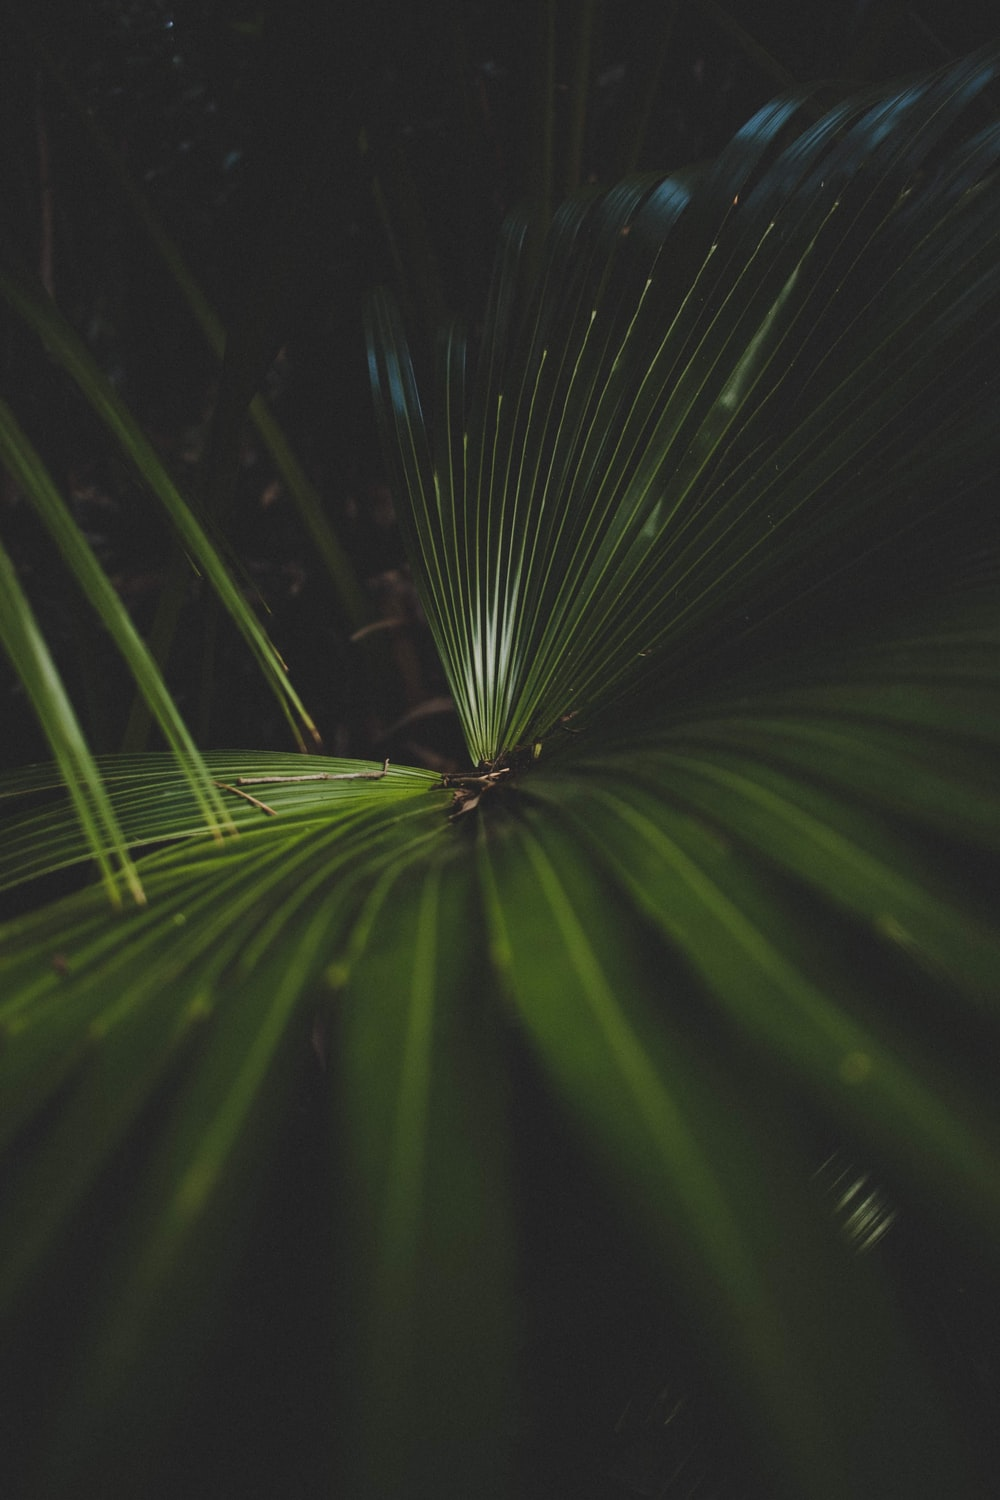 close-up photography of green palm plant